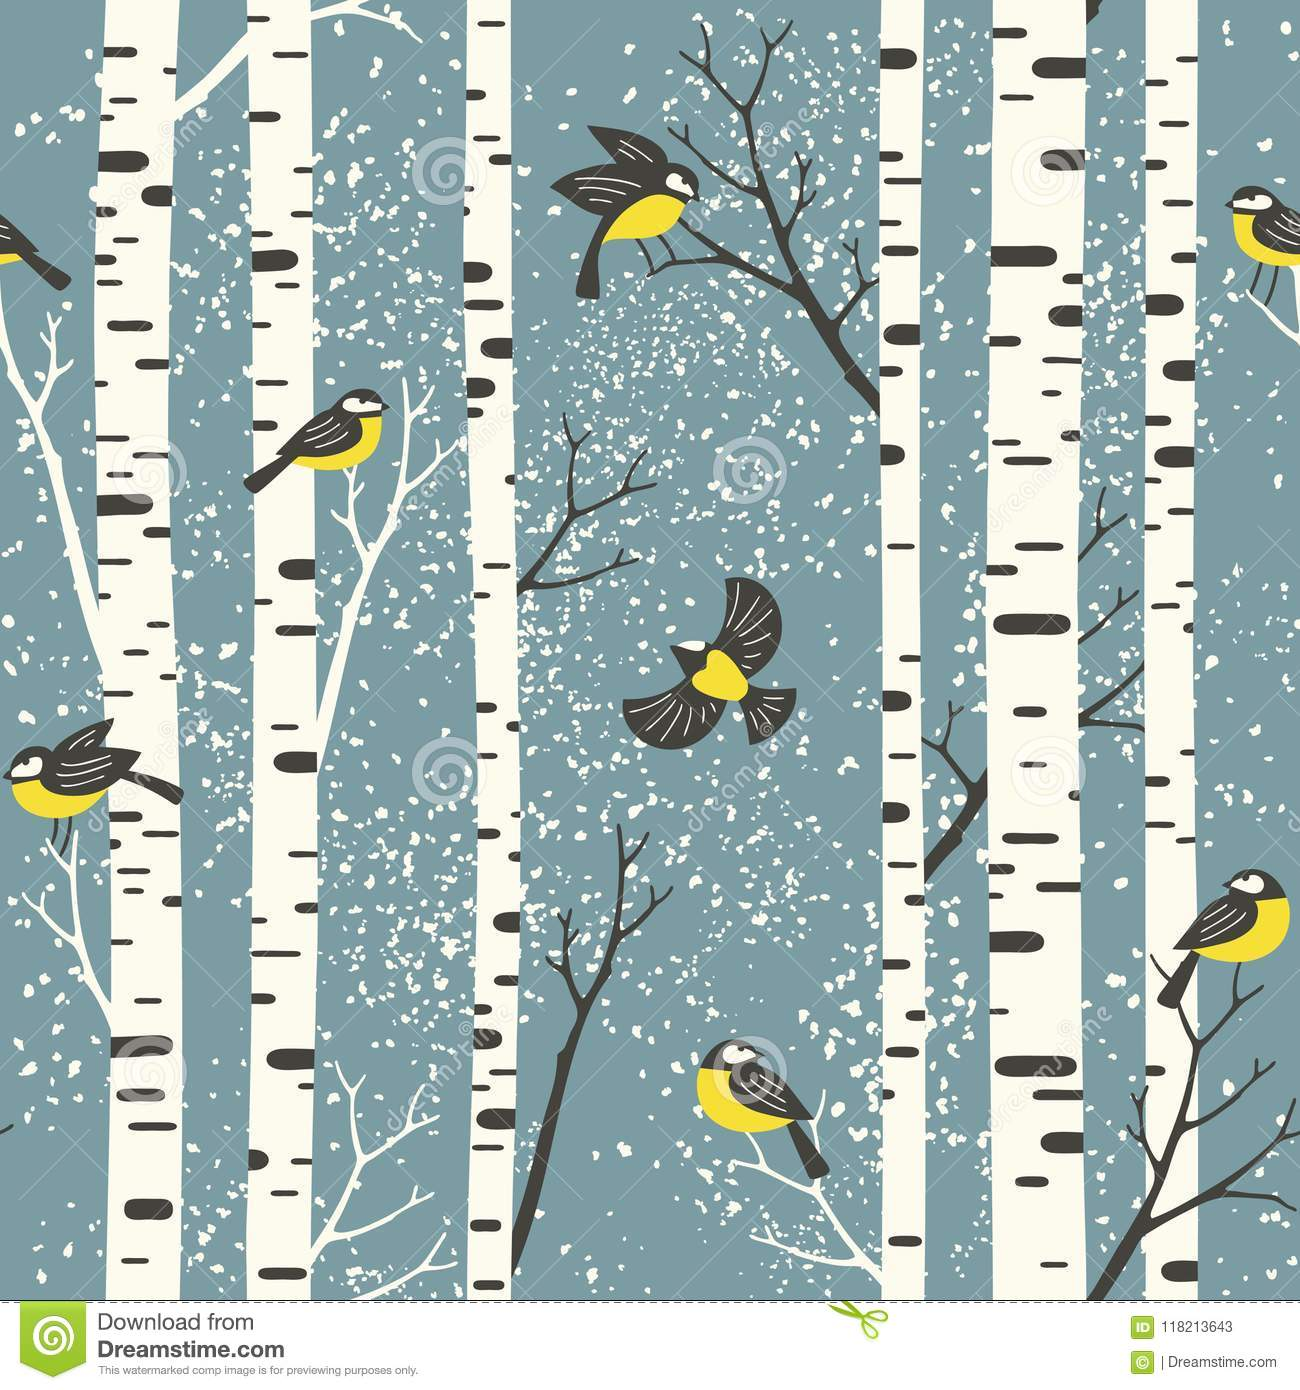 Snowy birch trees and birds on light blue background.